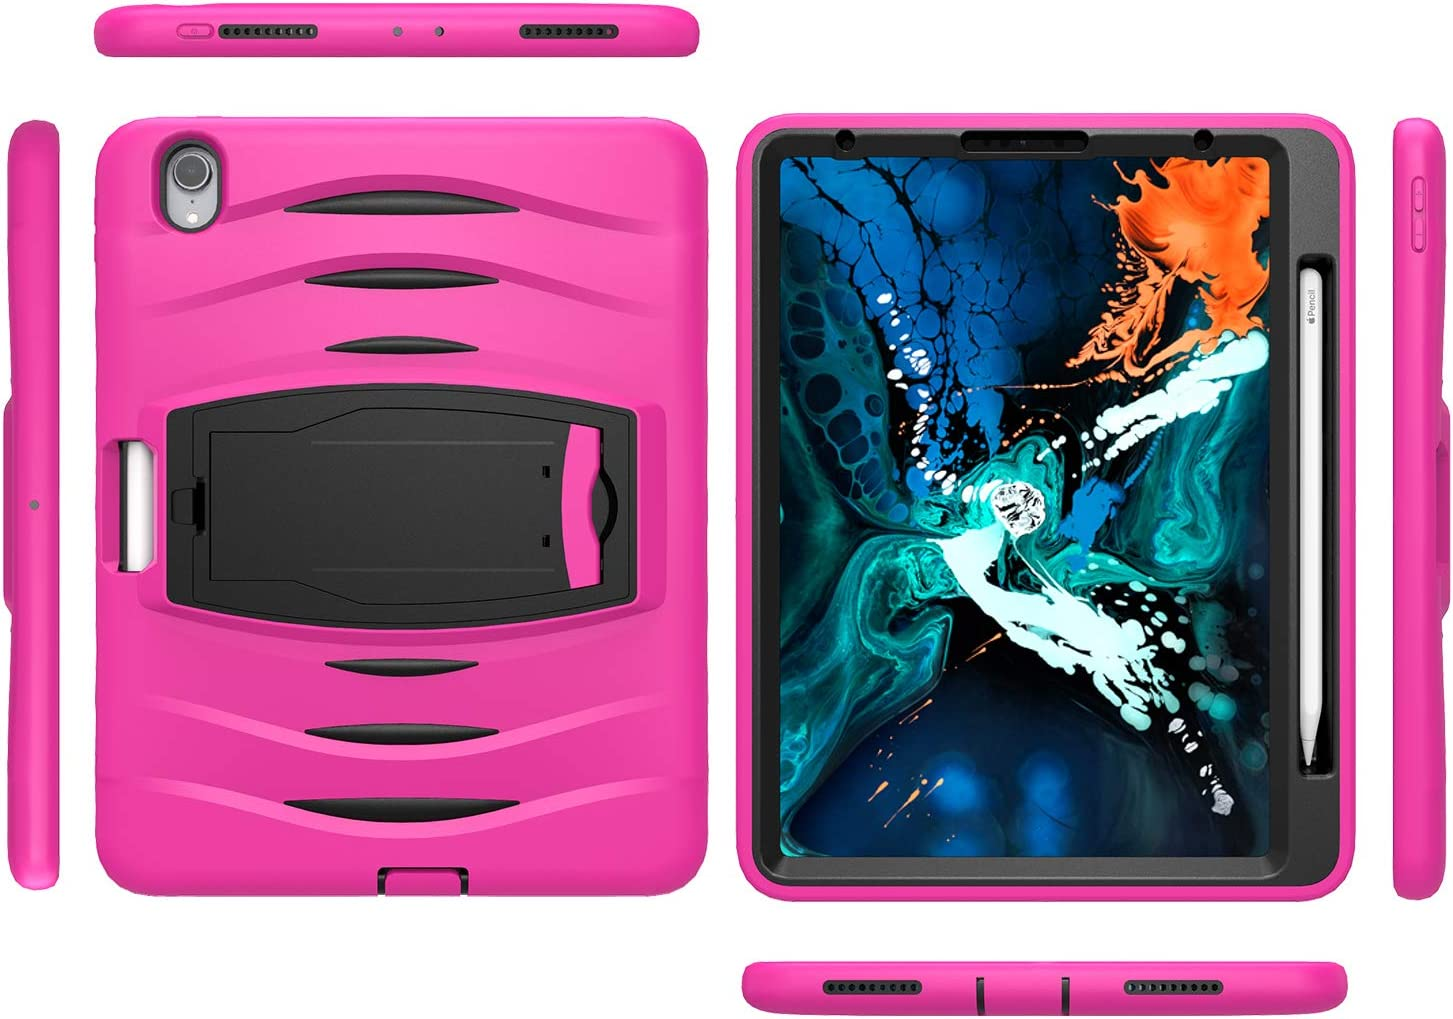 KIQ Full-Body Heavy Duty Military Rugged Shockproof Case Cover Stand Screen Protector for Apple iPad Pro 11 2018 iPad Pro 11-inch Case Armor Hot Pink Holds 2nd Gen Apple Pencil